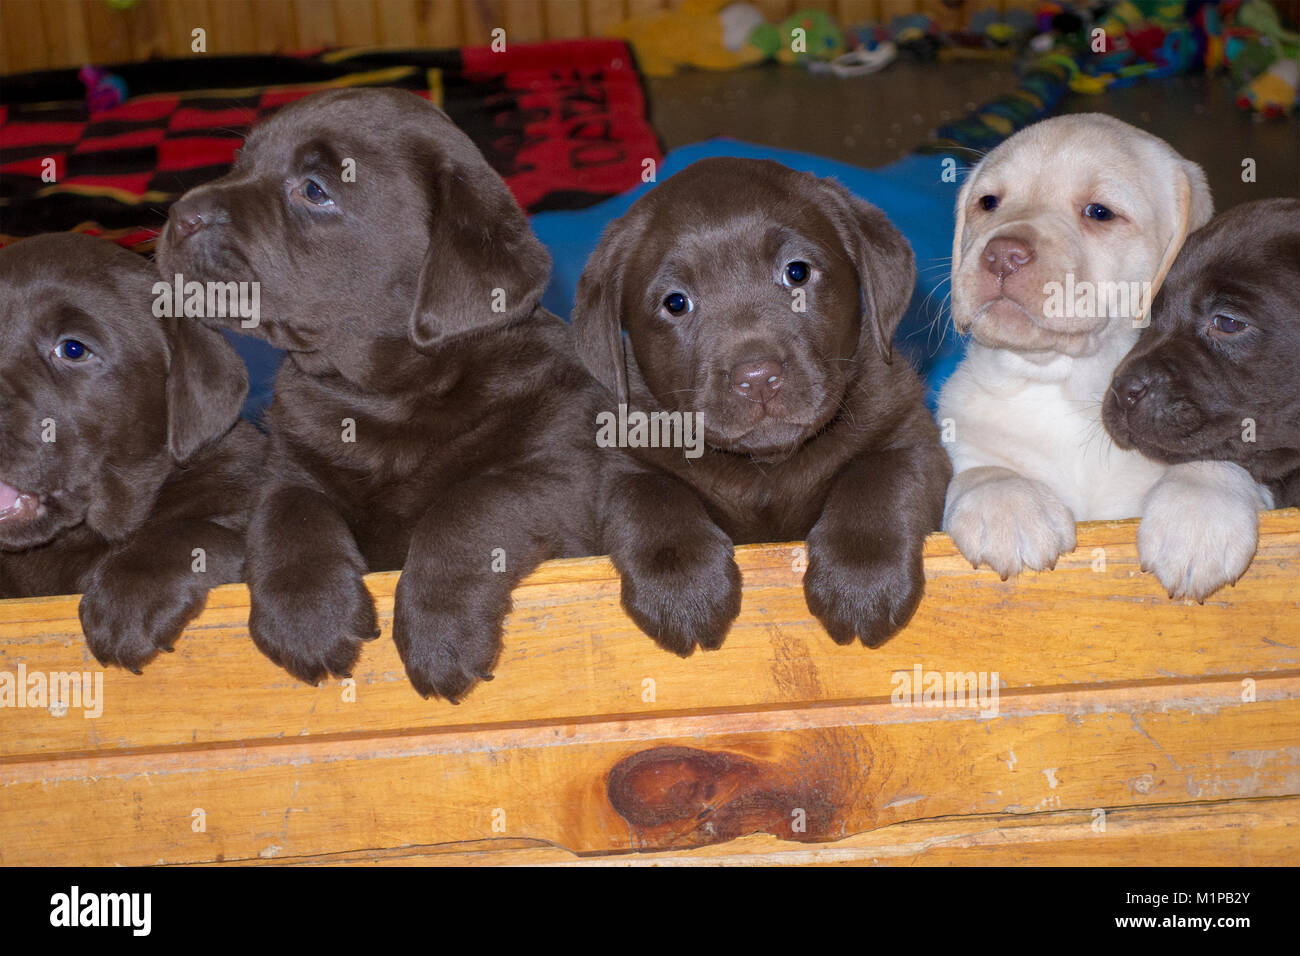 Five Cute Six Week Old Labrador Puppies Looking Over A Wall Stock Photo Alamy